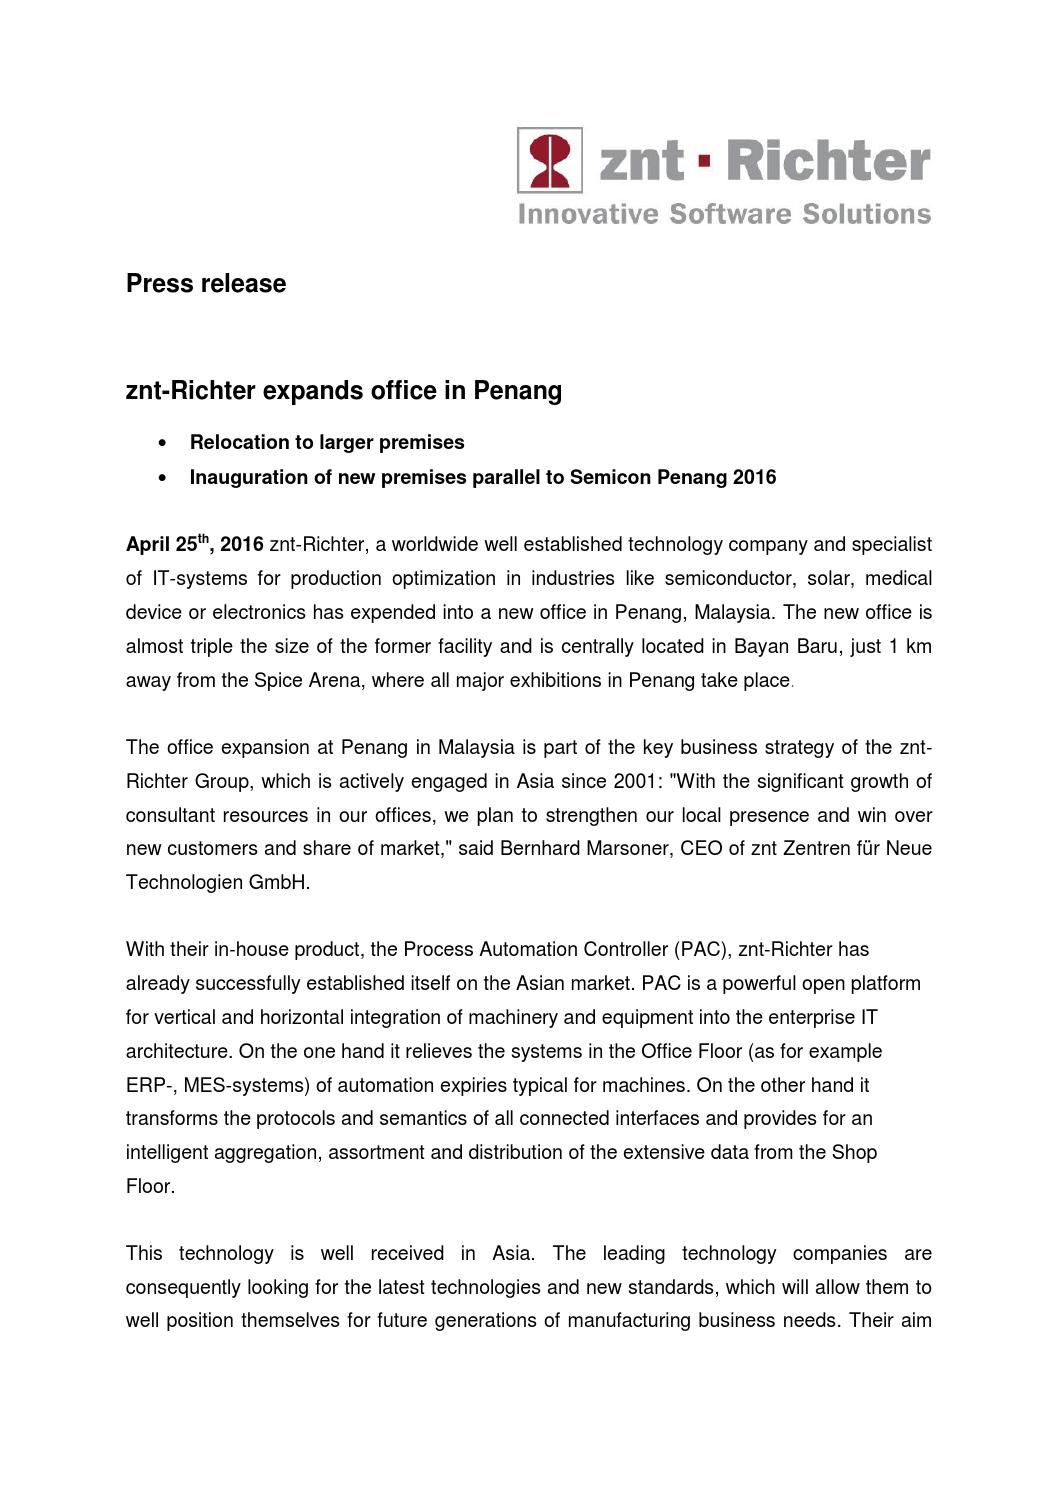 znt-Richter expands office in Penang by Pressedienst PR-Gateway - issuu